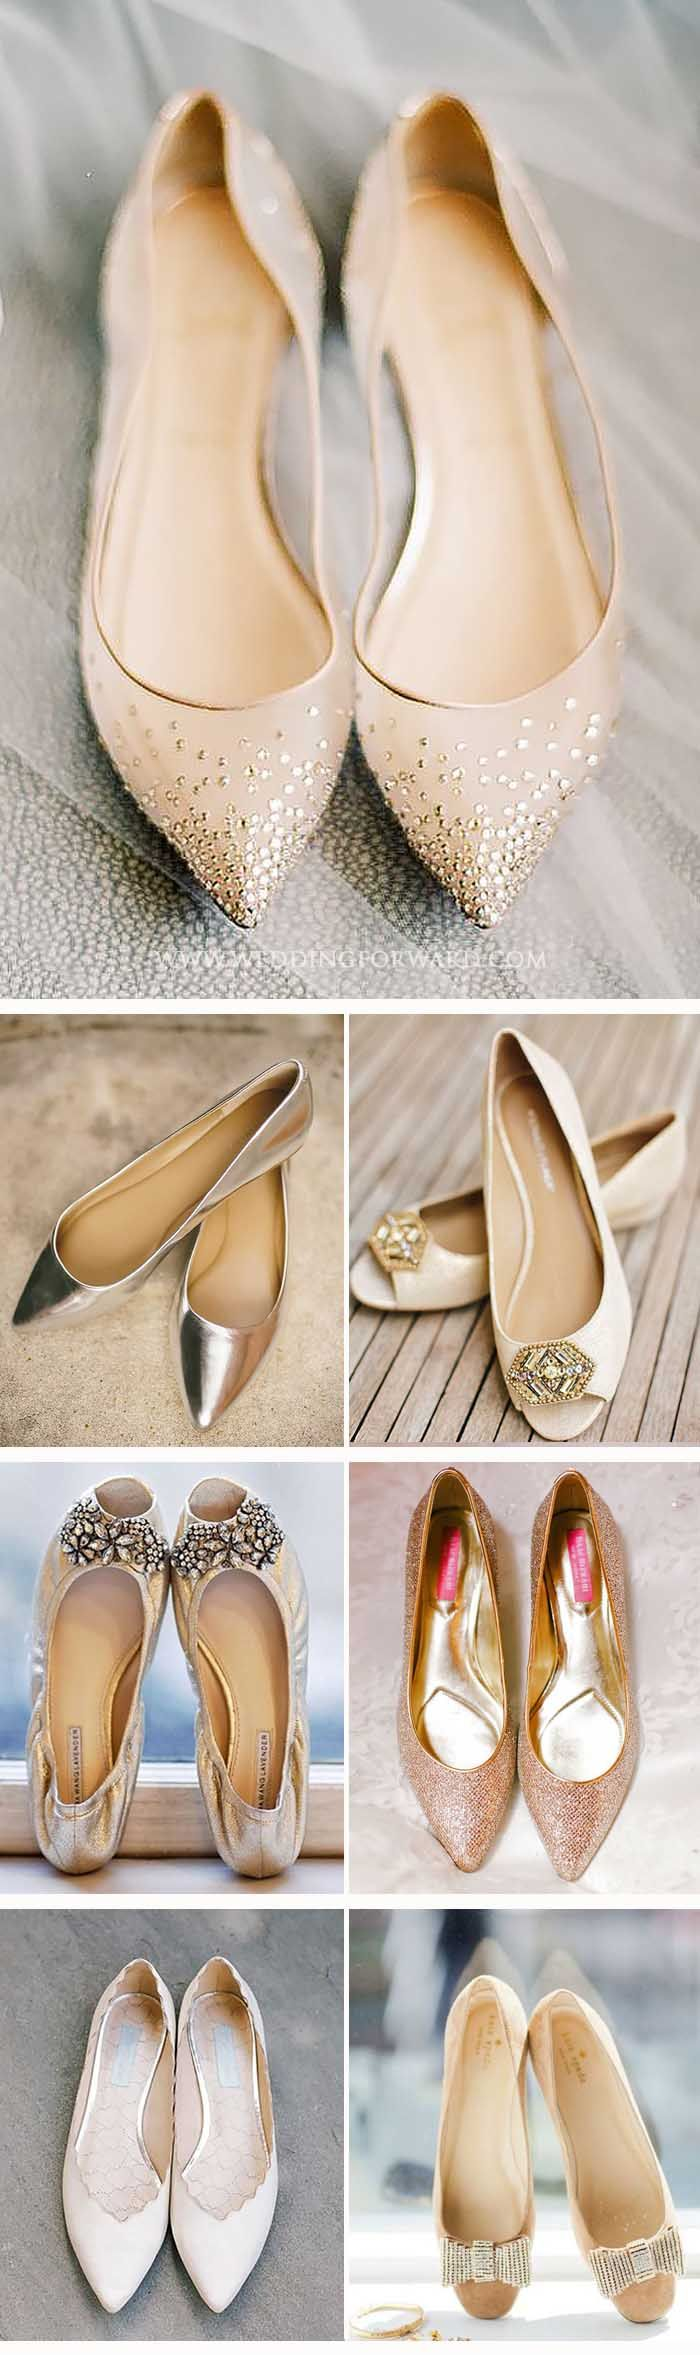 c7bfd96ab11 24 Flat Wedding Shoes For The Love Of Comfort And Style ❤See more  http